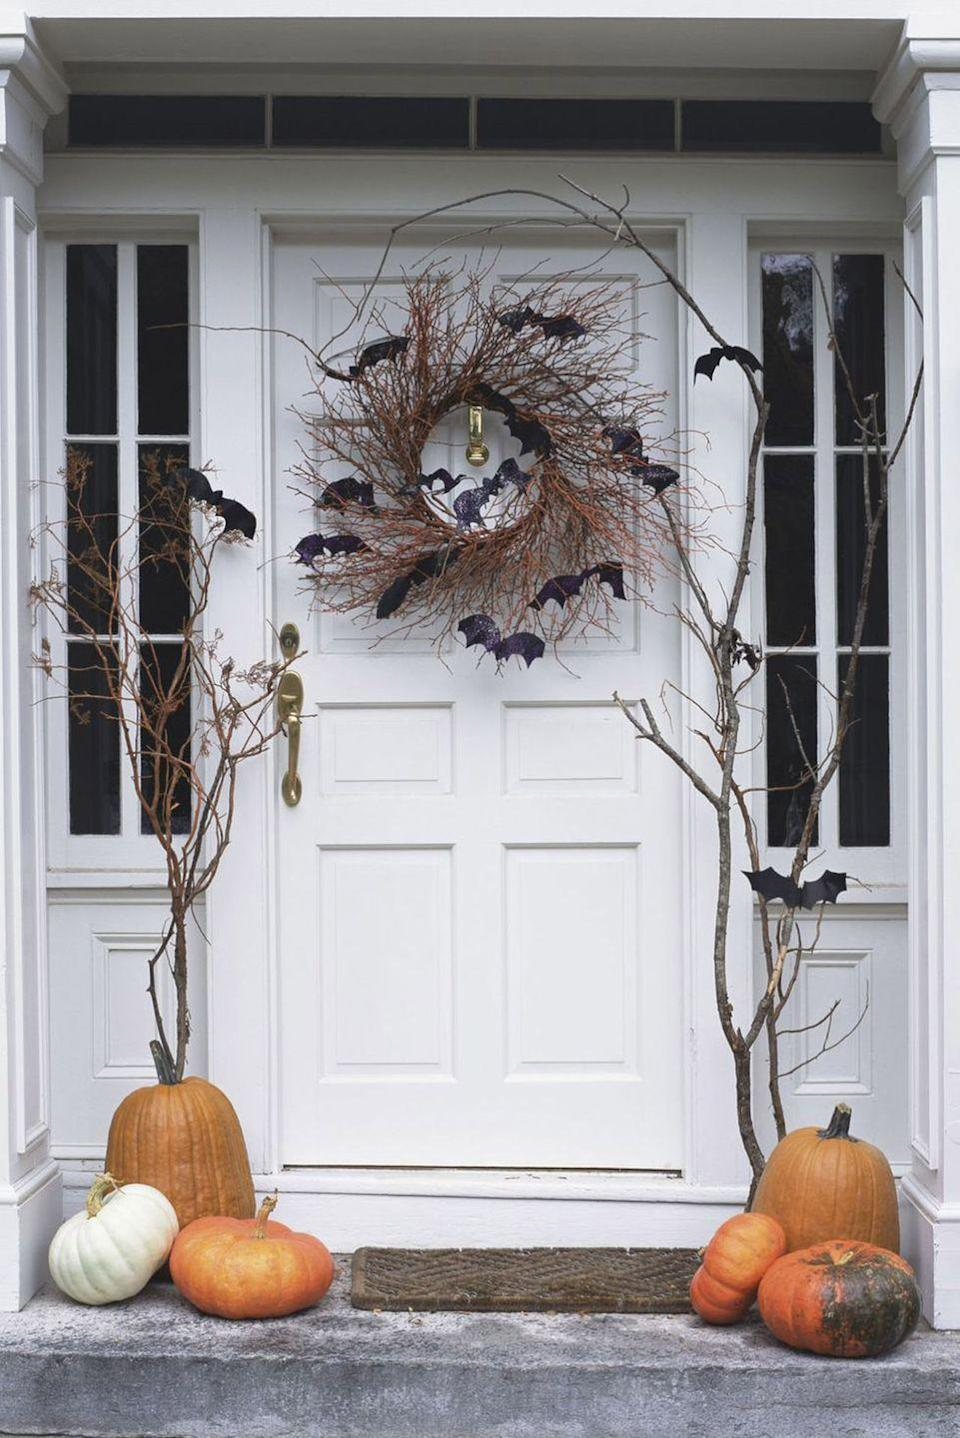 "<p>Turn <a href=""https://www.countryliving.com/diy-crafts/g1370/outdoor-halloween-decorations/"" rel=""nofollow noopener"" target=""_blank"" data-ylk=""slk:outdoor Halloween decorating"" class=""link rapid-noclick-resp"">outdoor Halloween decorating</a> into a family affair! Hang a wreath, string up lights, and assemble a display of pumpkins for an arresting, haunted entrance.<br></p><p><a class=""link rapid-noclick-resp"" href=""https://www.amazon.com/s/ref=nb_sb_noss_2?url=search-alias%3Daps&field-keywords=Halloween+wreath&rh=i%3Aaps%2Ck%3AHalloween+wreath&tag=syn-yahoo-20&ascsubtag=%5Bartid%7C2139.g.34440360%5Bsrc%7Cyahoo-us"" rel=""nofollow noopener"" target=""_blank"" data-ylk=""slk:SHOP WREATHS"">SHOP WREATHS</a><br></p>"